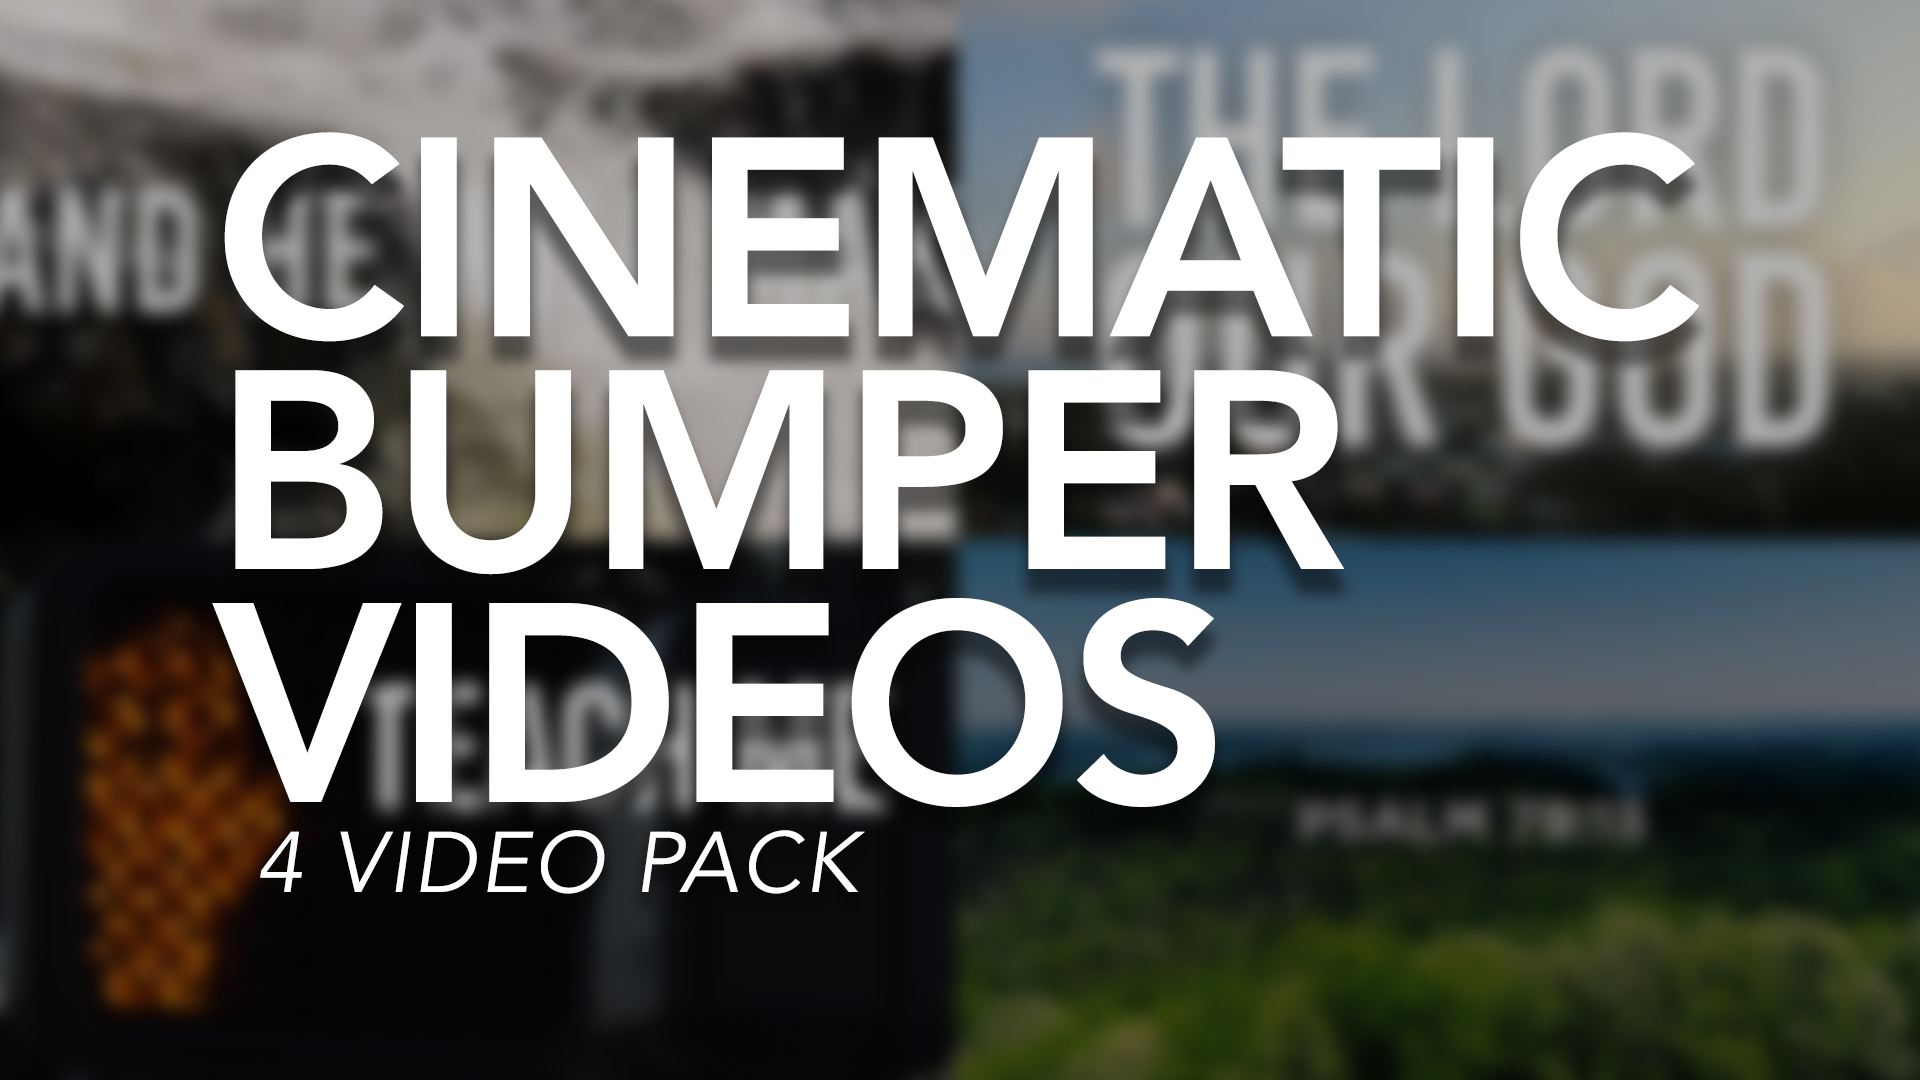 Cinematic Bumper Videos